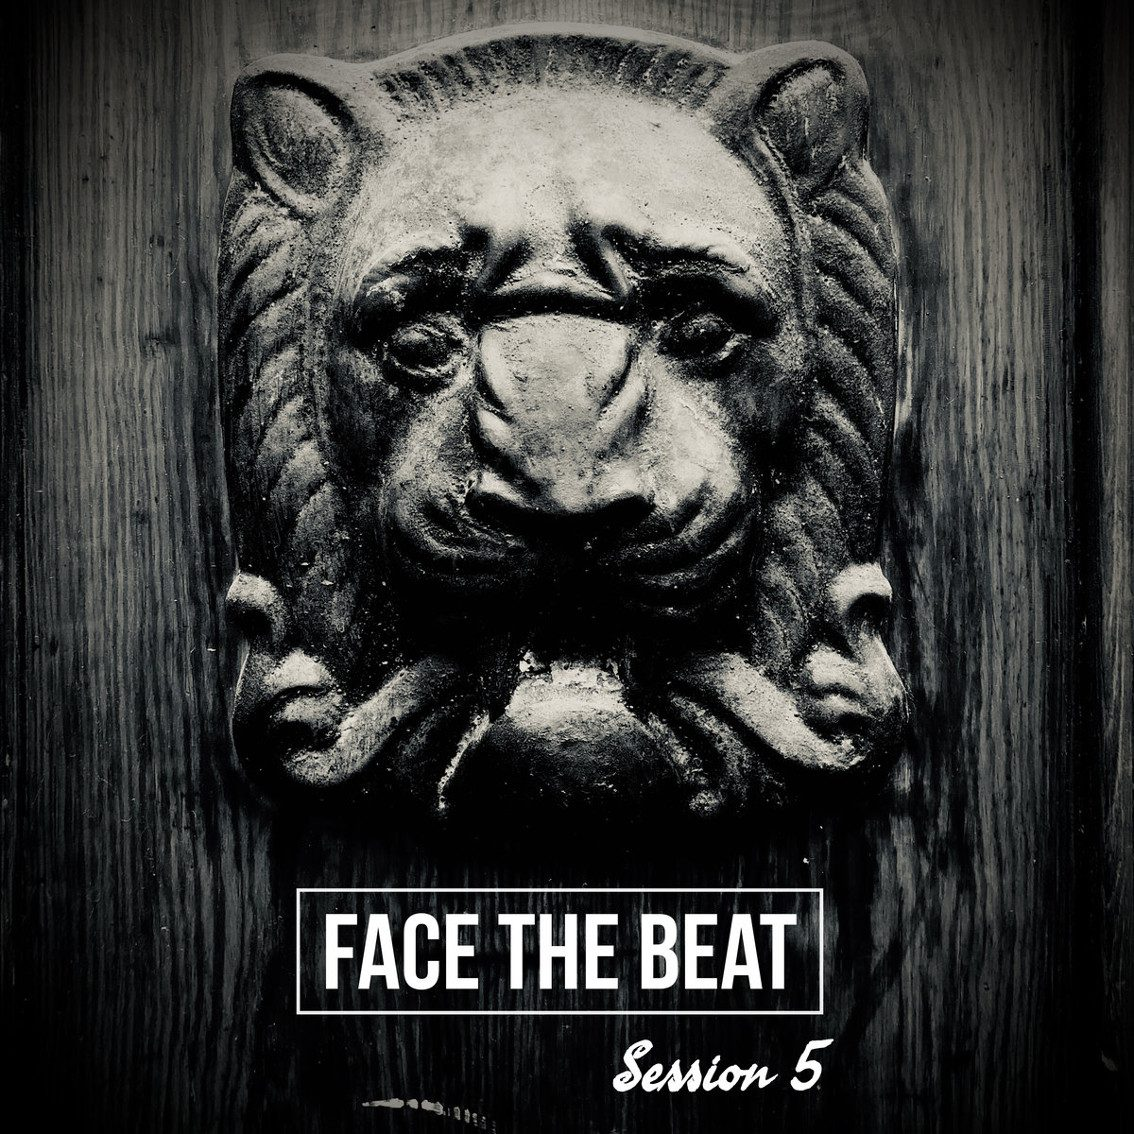 'Face The Beat: Session 5' out now ! Immediately on Top 3 most popular releases on Bandcamp